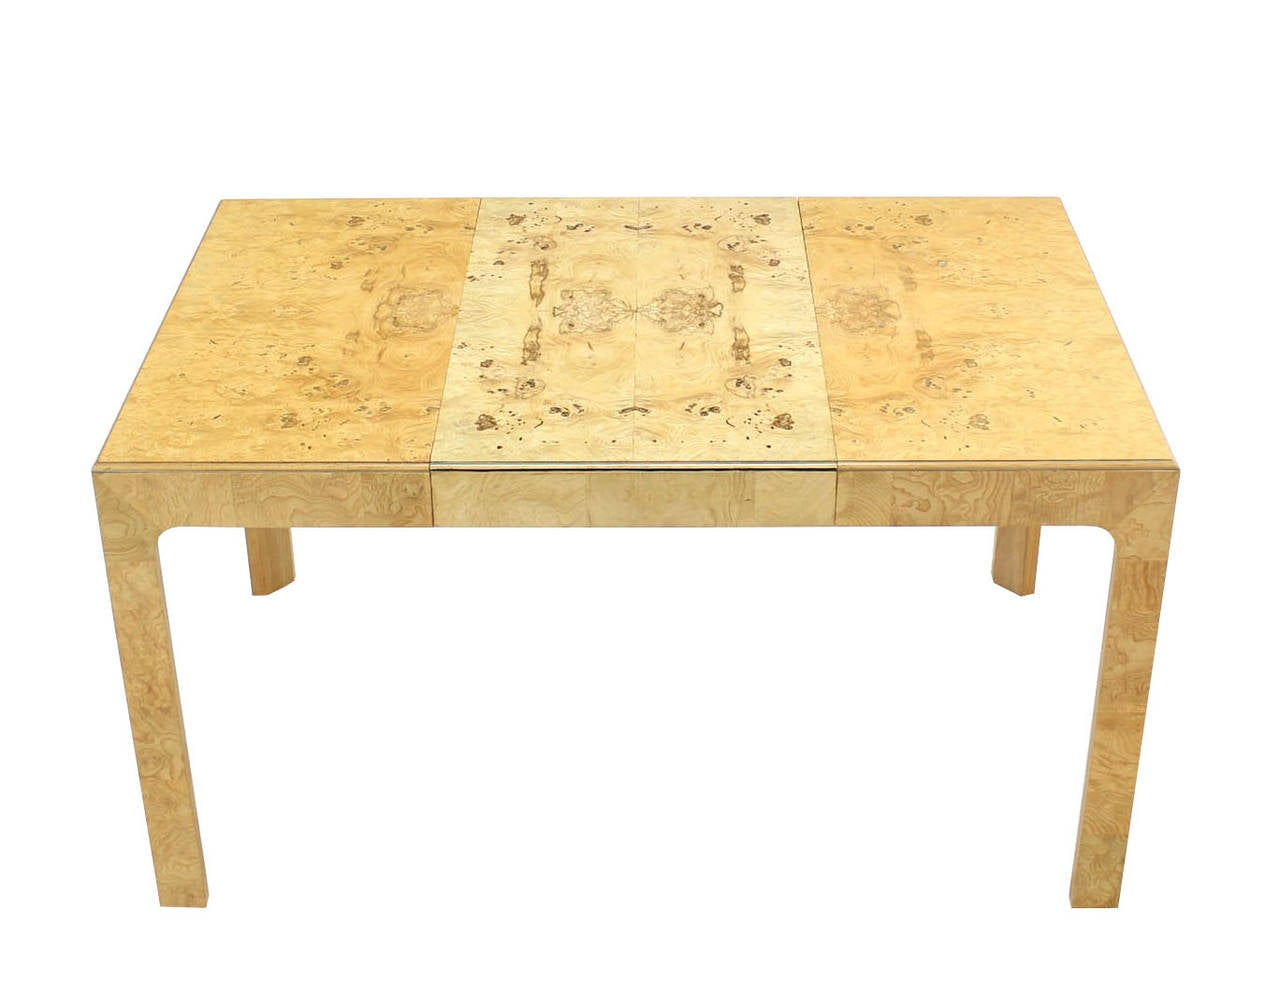 Henredon Square Game Or Dining Table With One Extension At